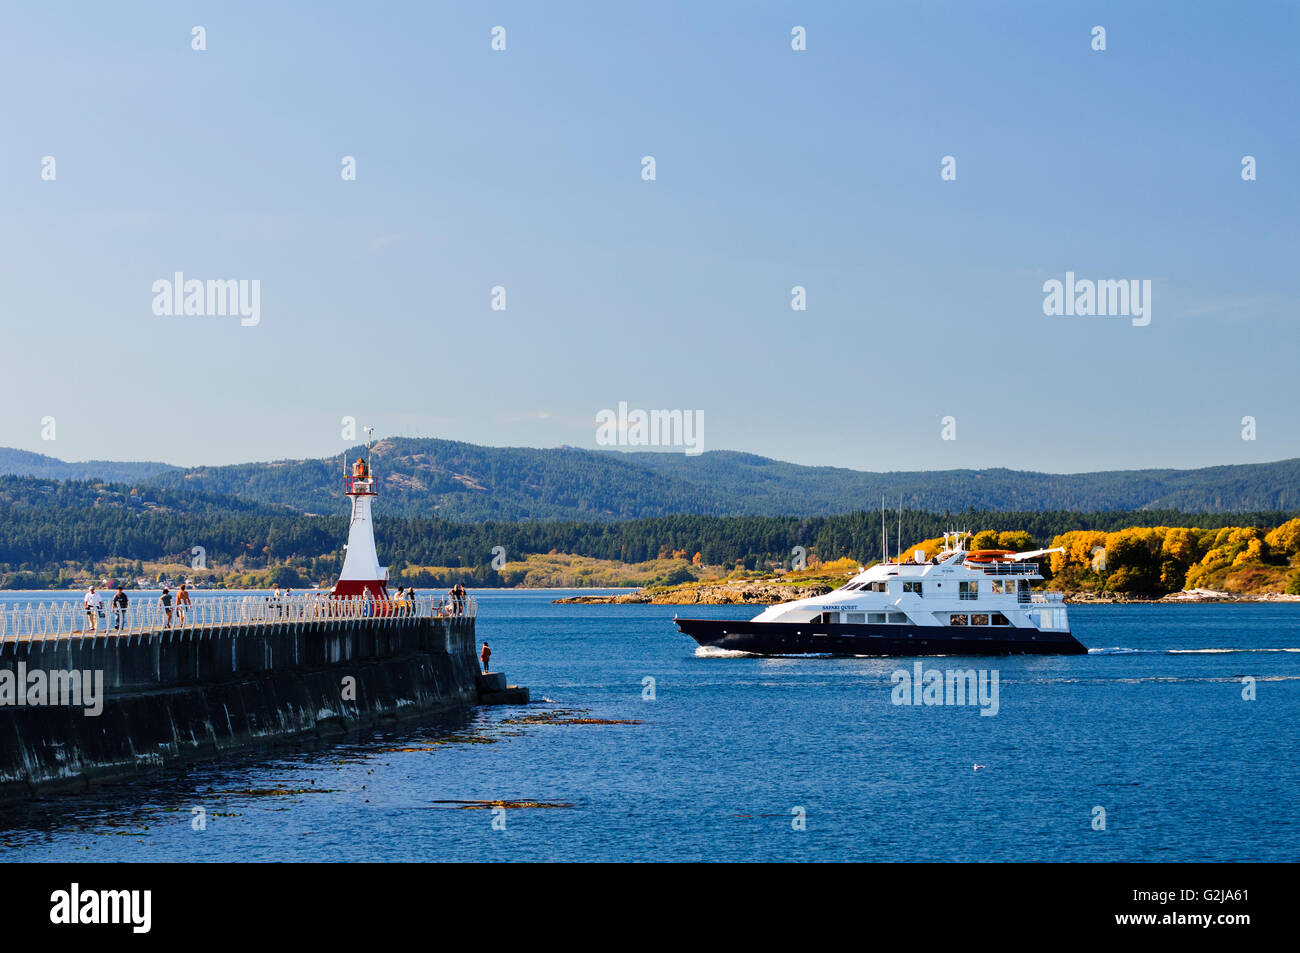 A private yacht, Safari Quest, heads past the Ogden Point Breakwater Lighthouse in Victoria, British Columbia. - Stock Image